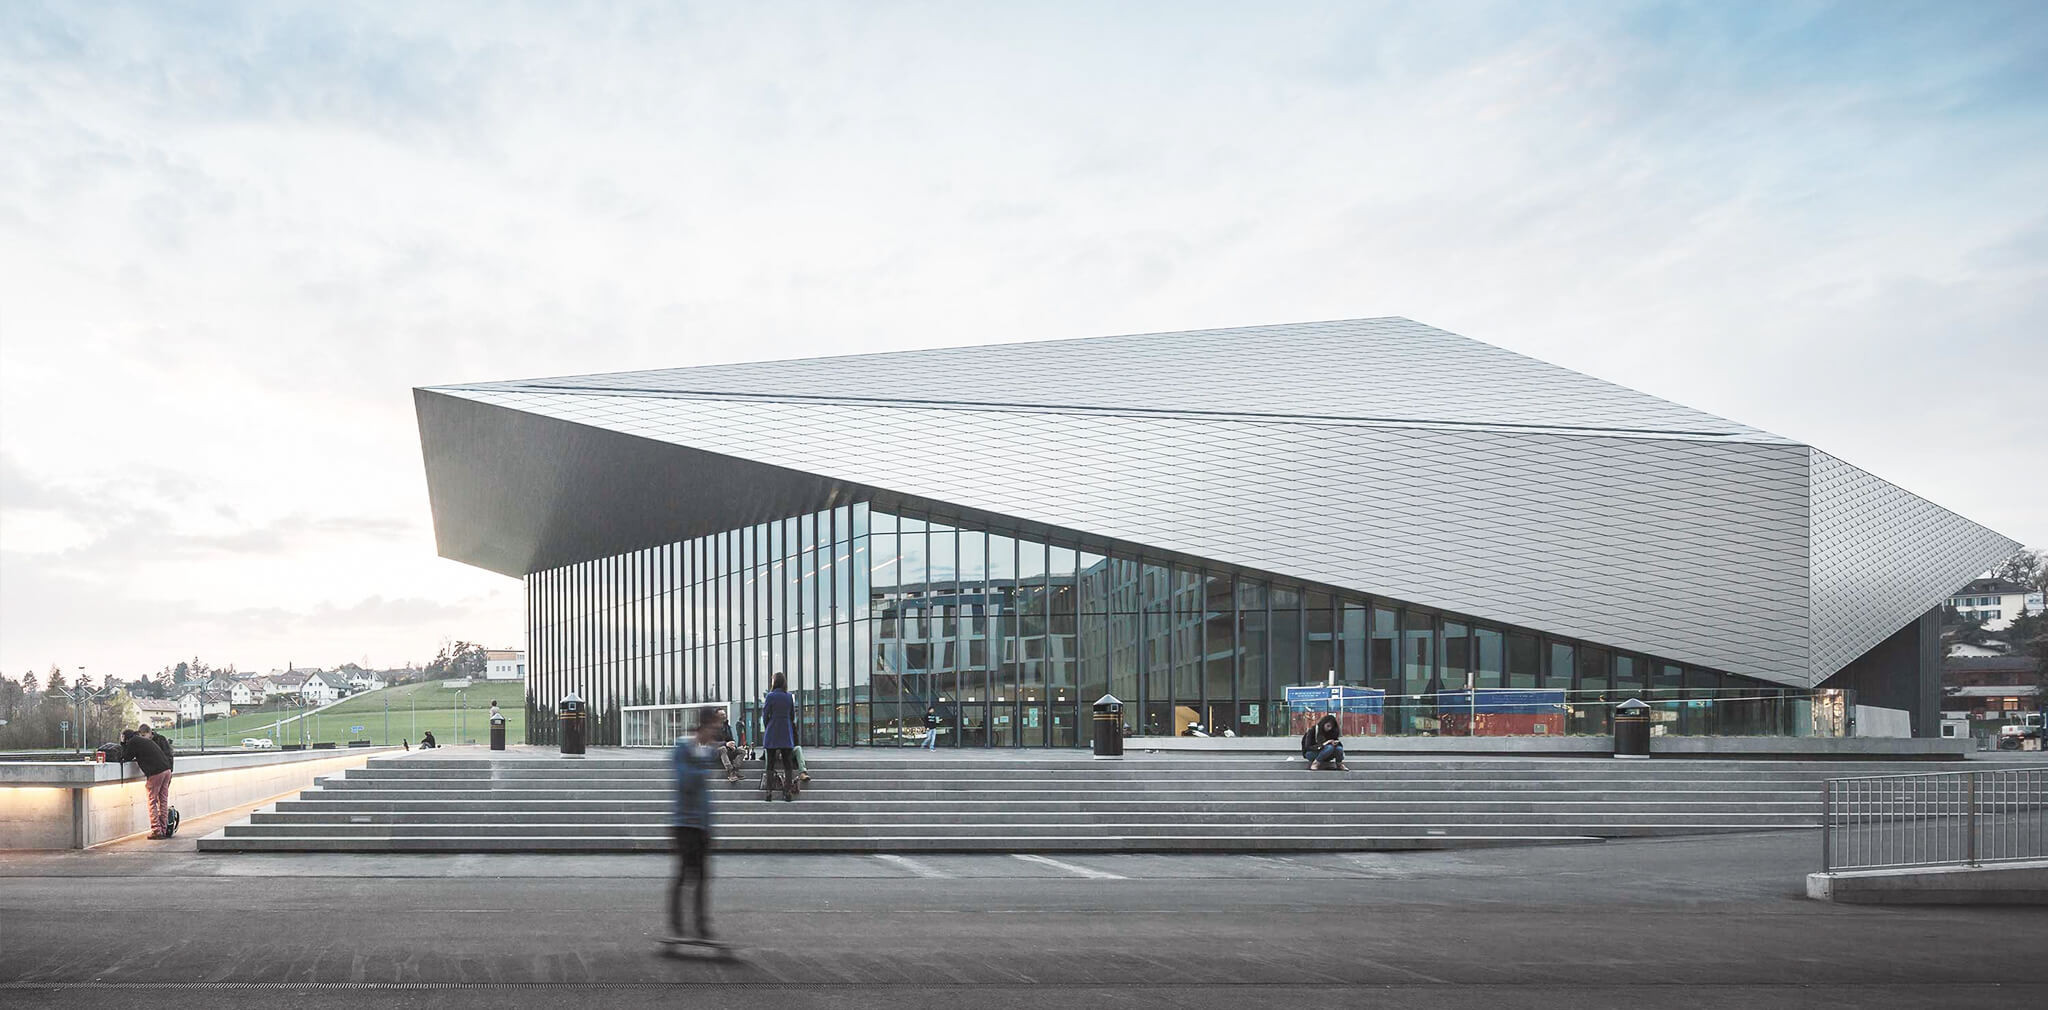 The symposium was due to take place at the SwissTech Convention Center in Lausanne ©SwissTech